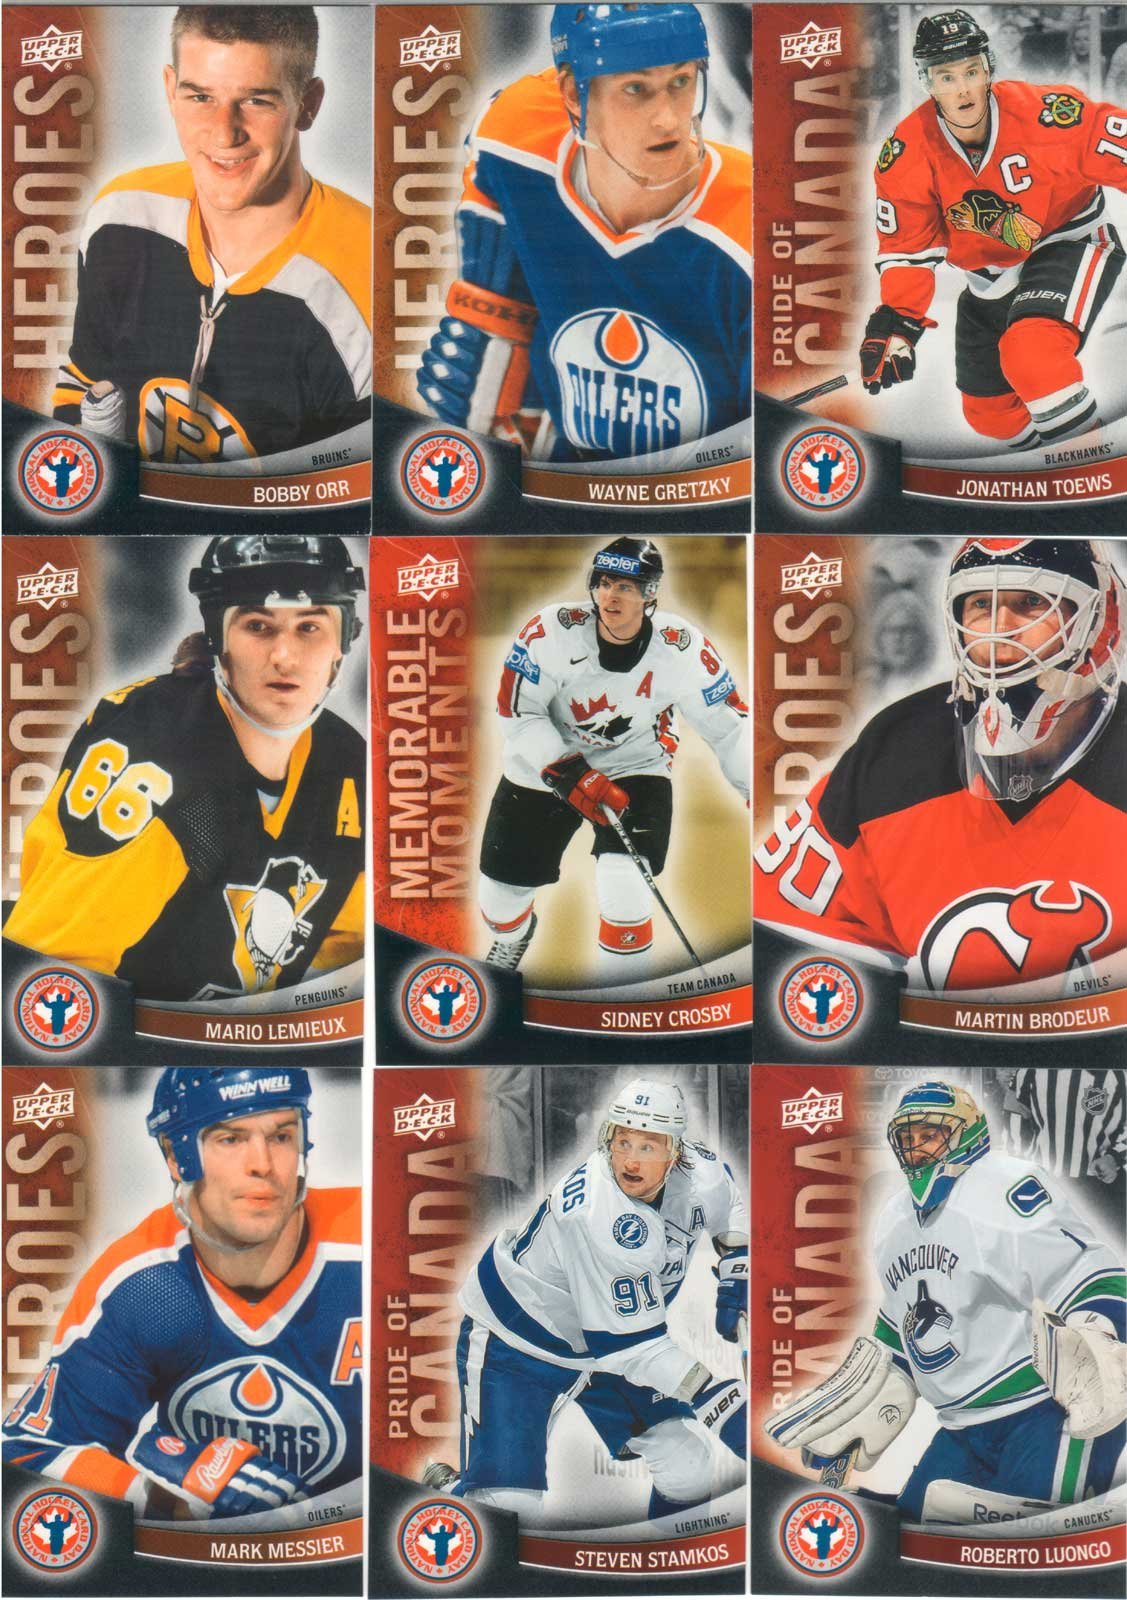 2011 / 2012 Upper Deck National Hockey Card Day Complete Mint 16 Card Set Featuring a Shortprinted Sidney Crosby Card, Plus Highly Touted Rookies Cody Hodgson, Ryan Nugent-Hopkins, Brett Connolly, Mark Scheifele and Sean Couturier, Canadian Stars Taylor Hall, P.k. Subban, Steven Stamkos, Jonathan